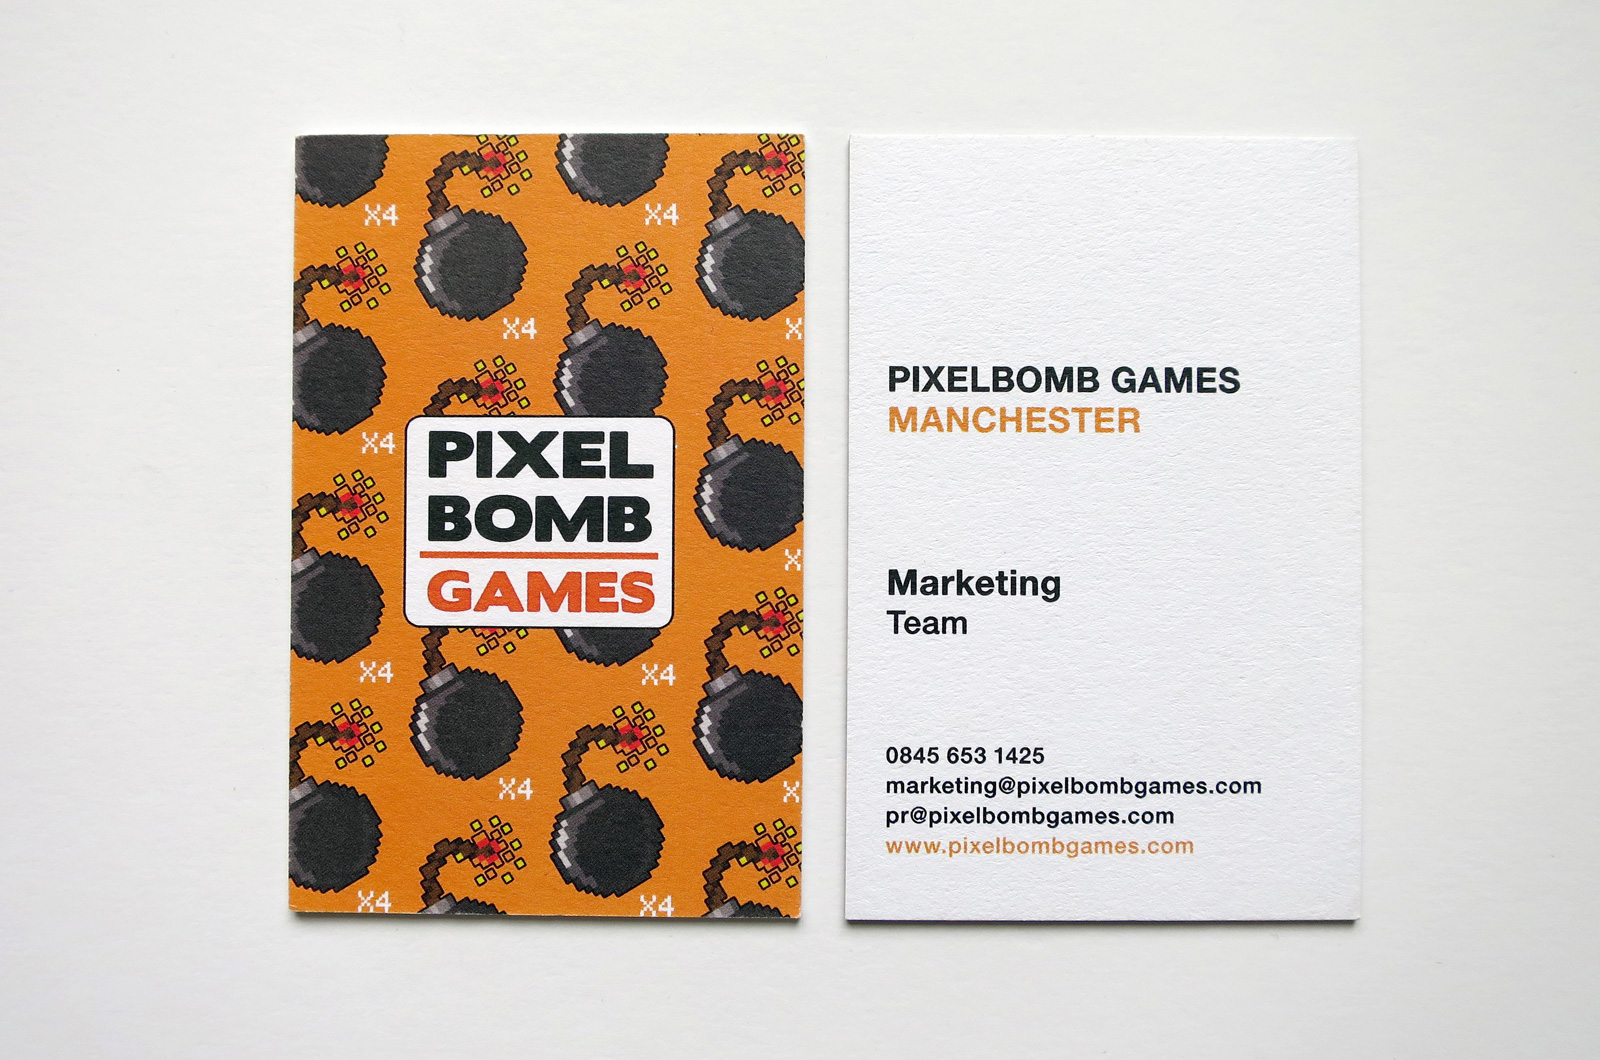 Pixelbomb Business Cards 02